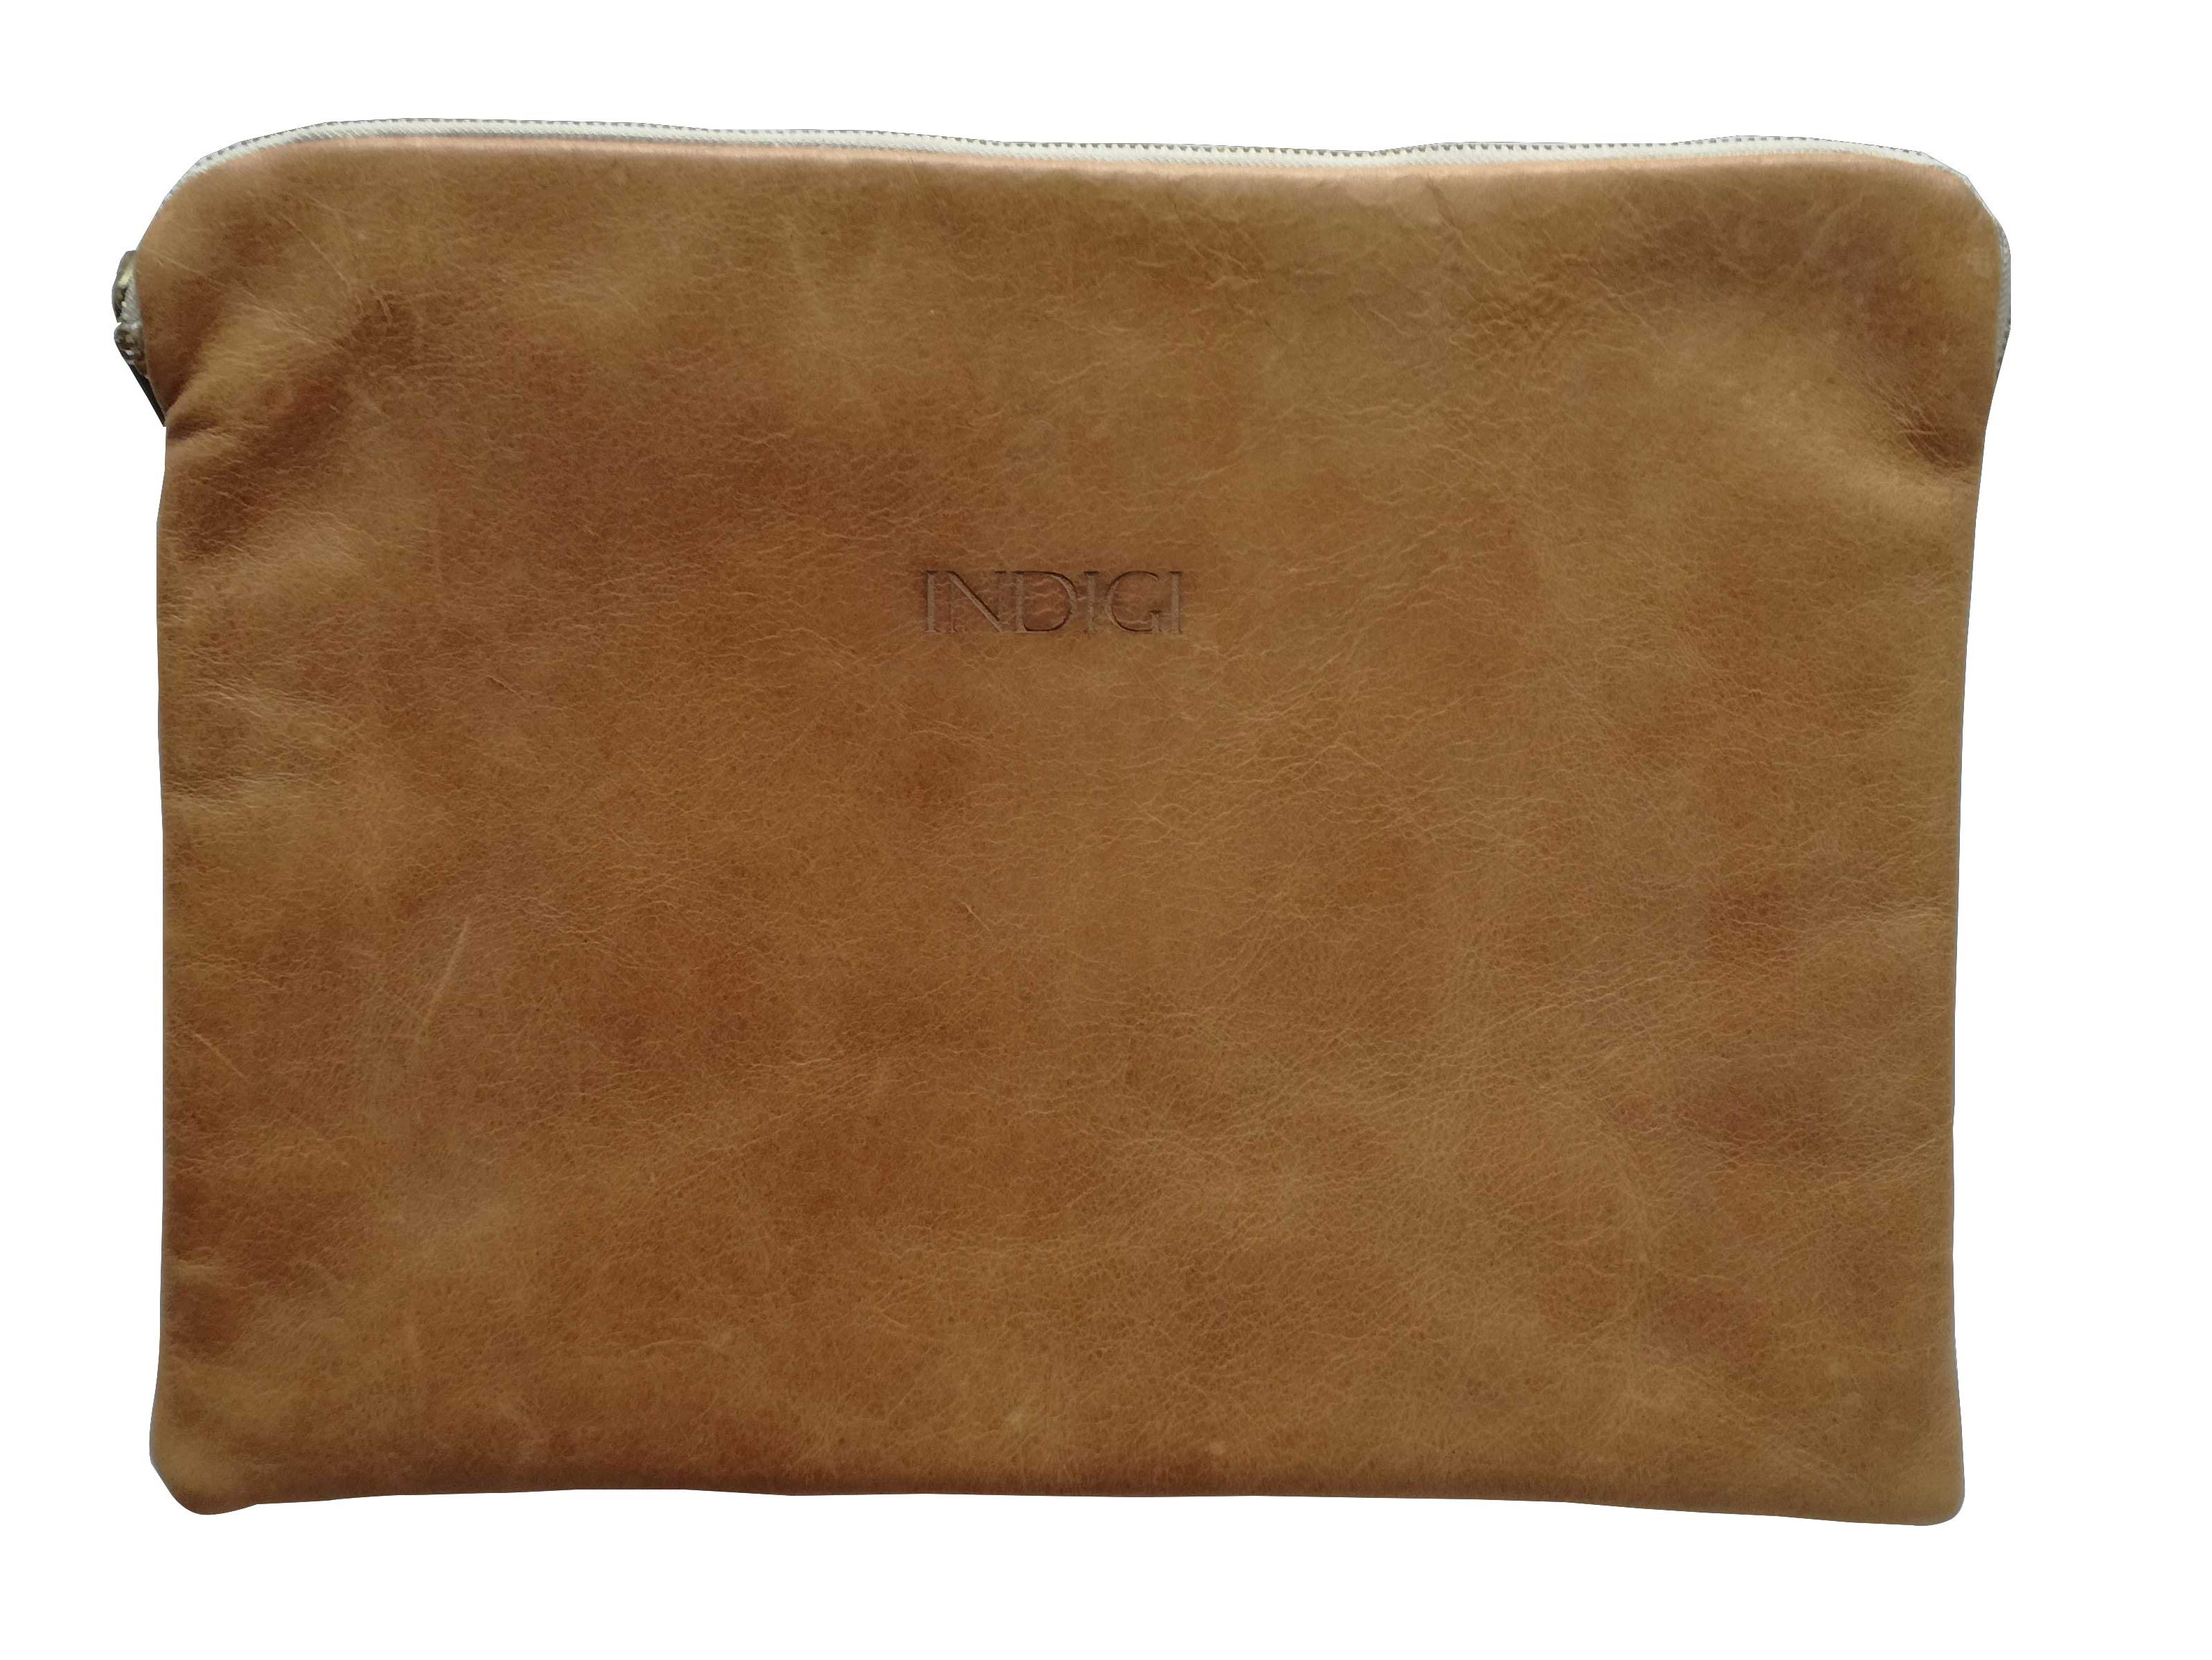 "Laptop Pouch 13"" Leather - View All"